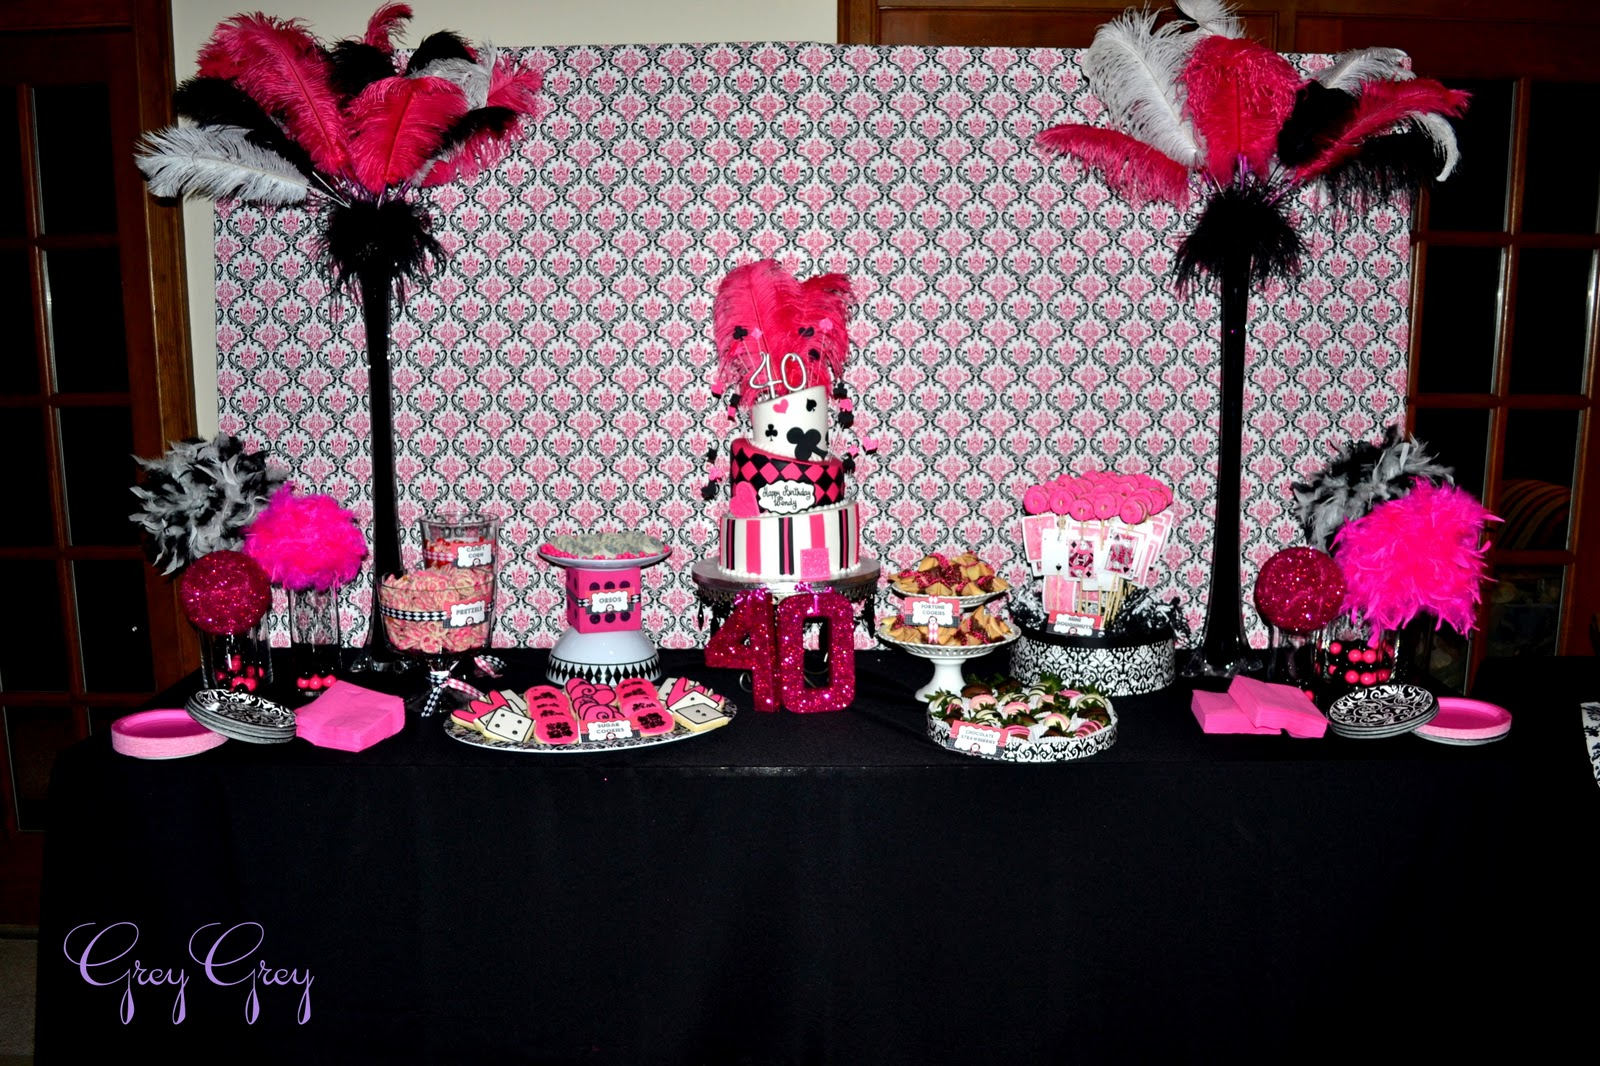 GreyGrey Designs: {My Parties} Hot Pink Glamorous Casino